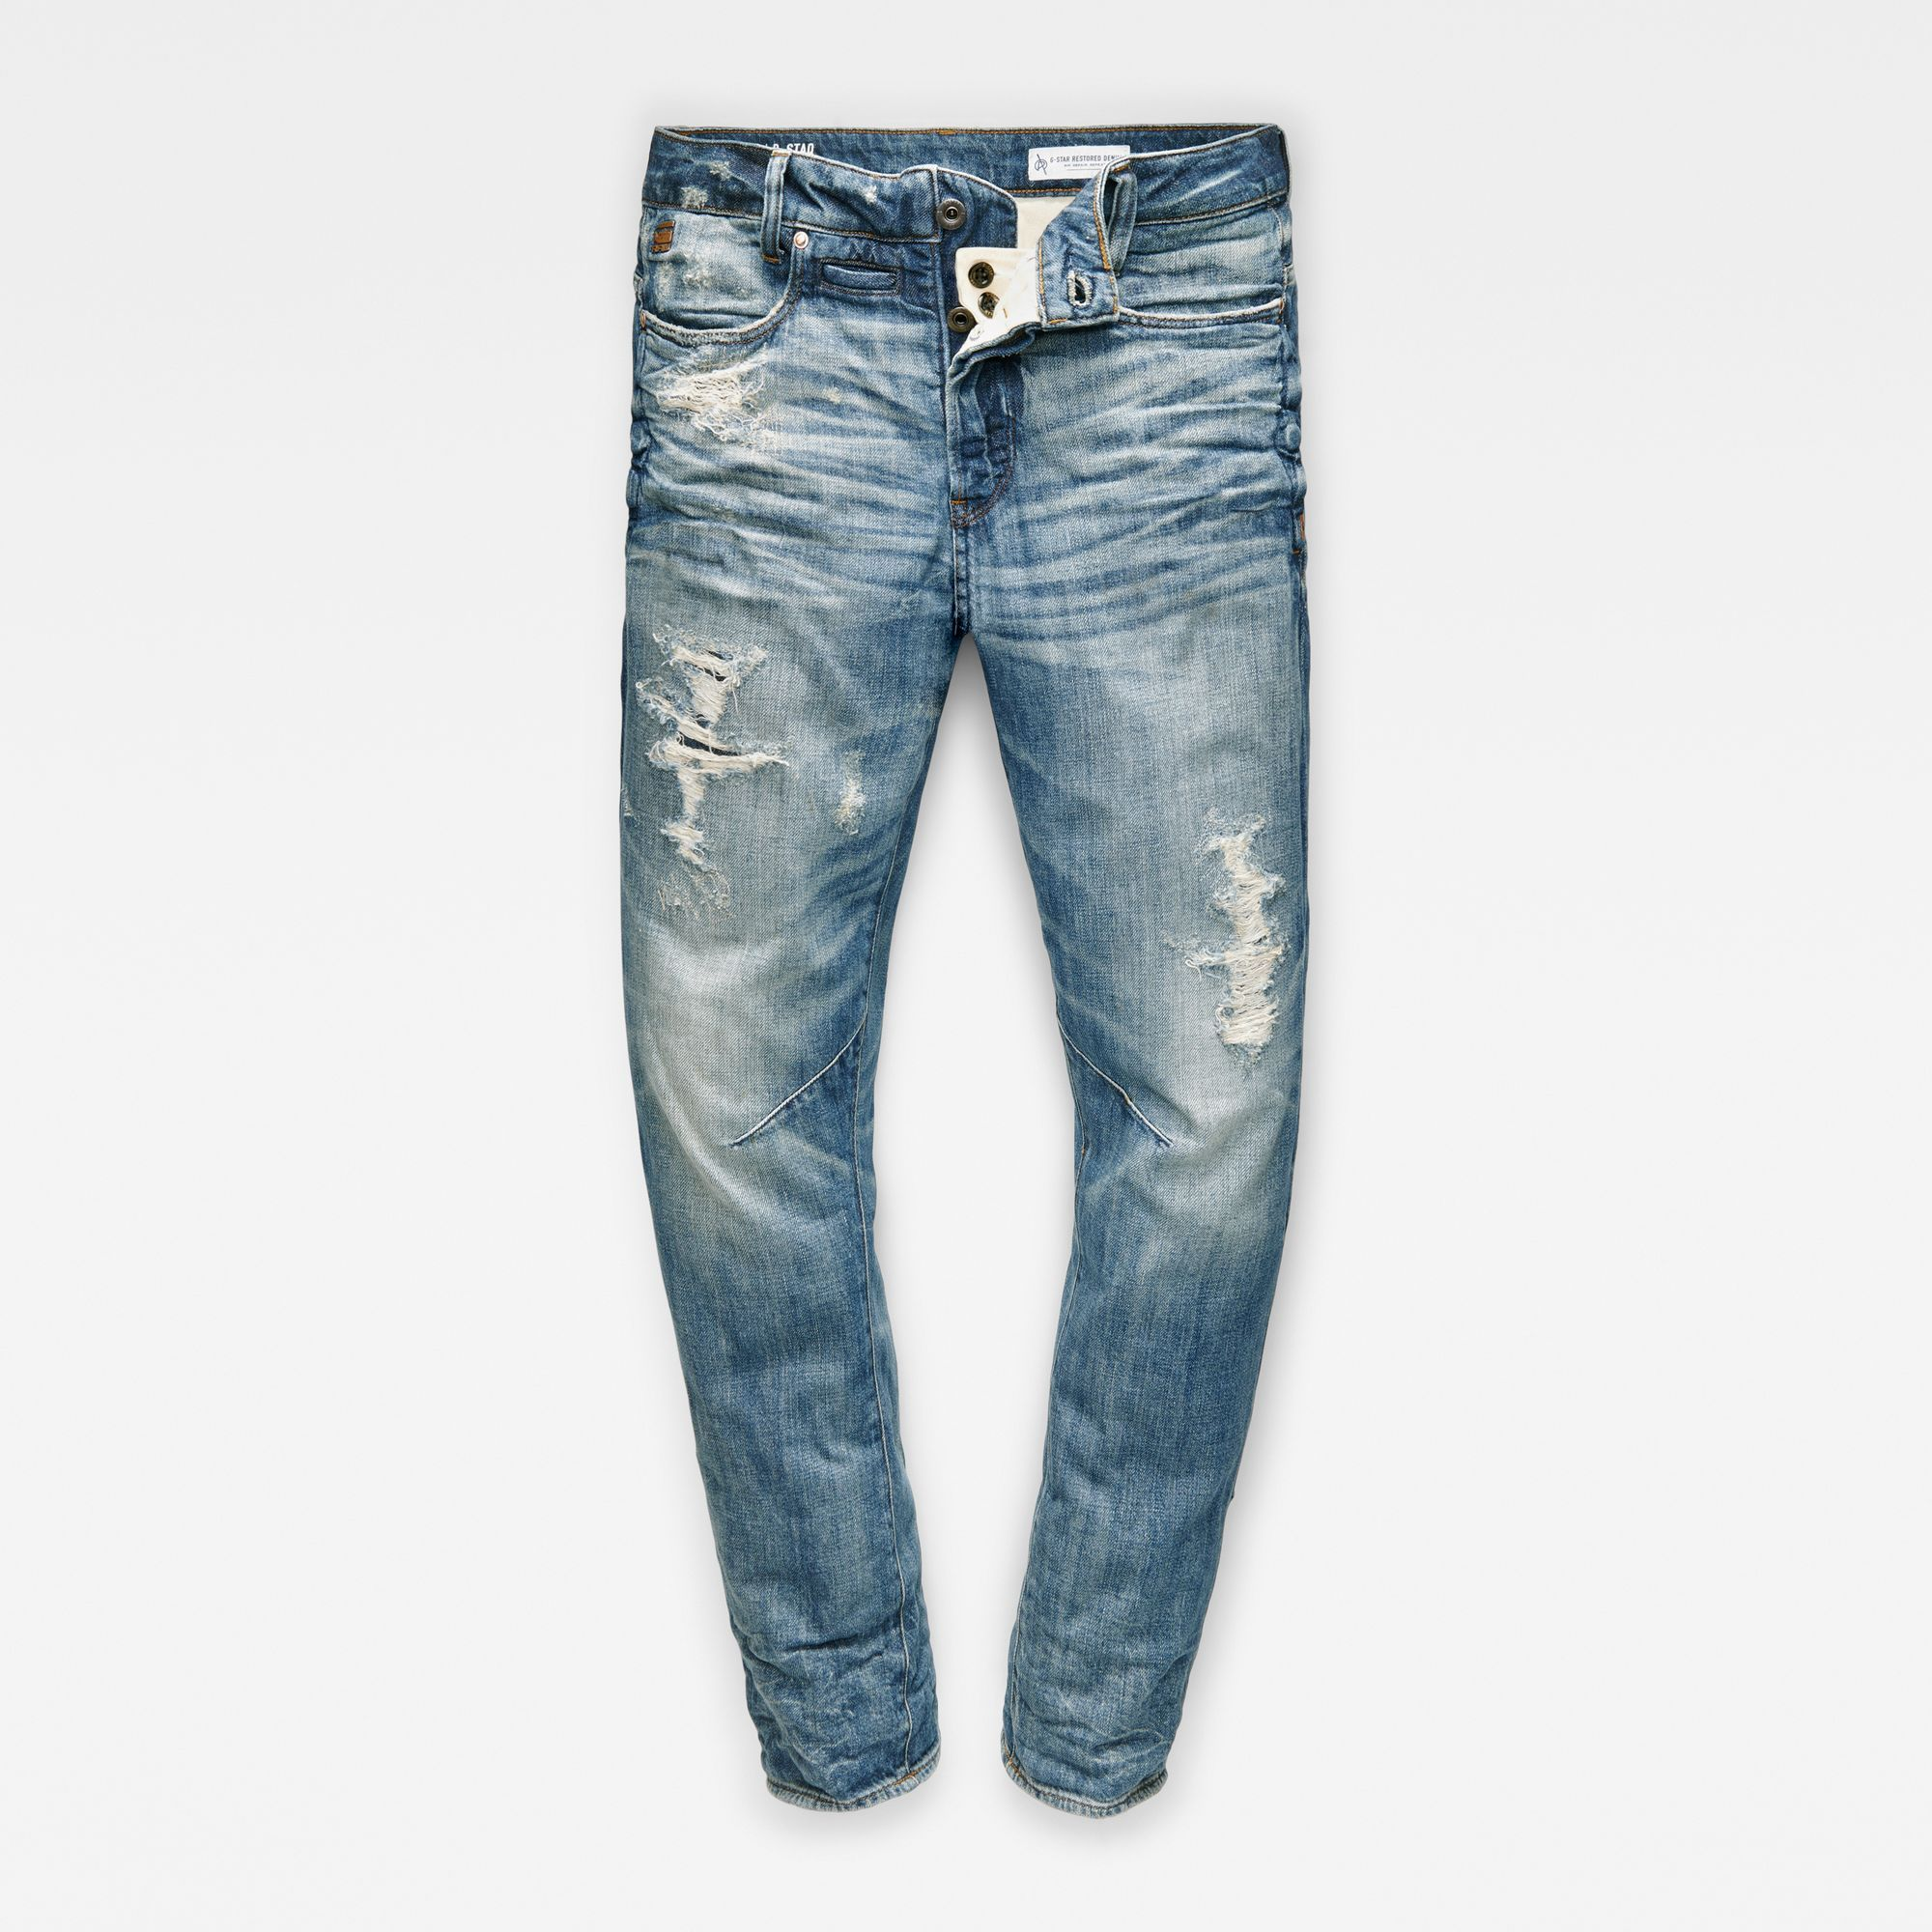 baa8d4e59bc Raw Essentials D-Staq 3D Tapered Jeans | G-Star Raw Clothing | Jeans ...